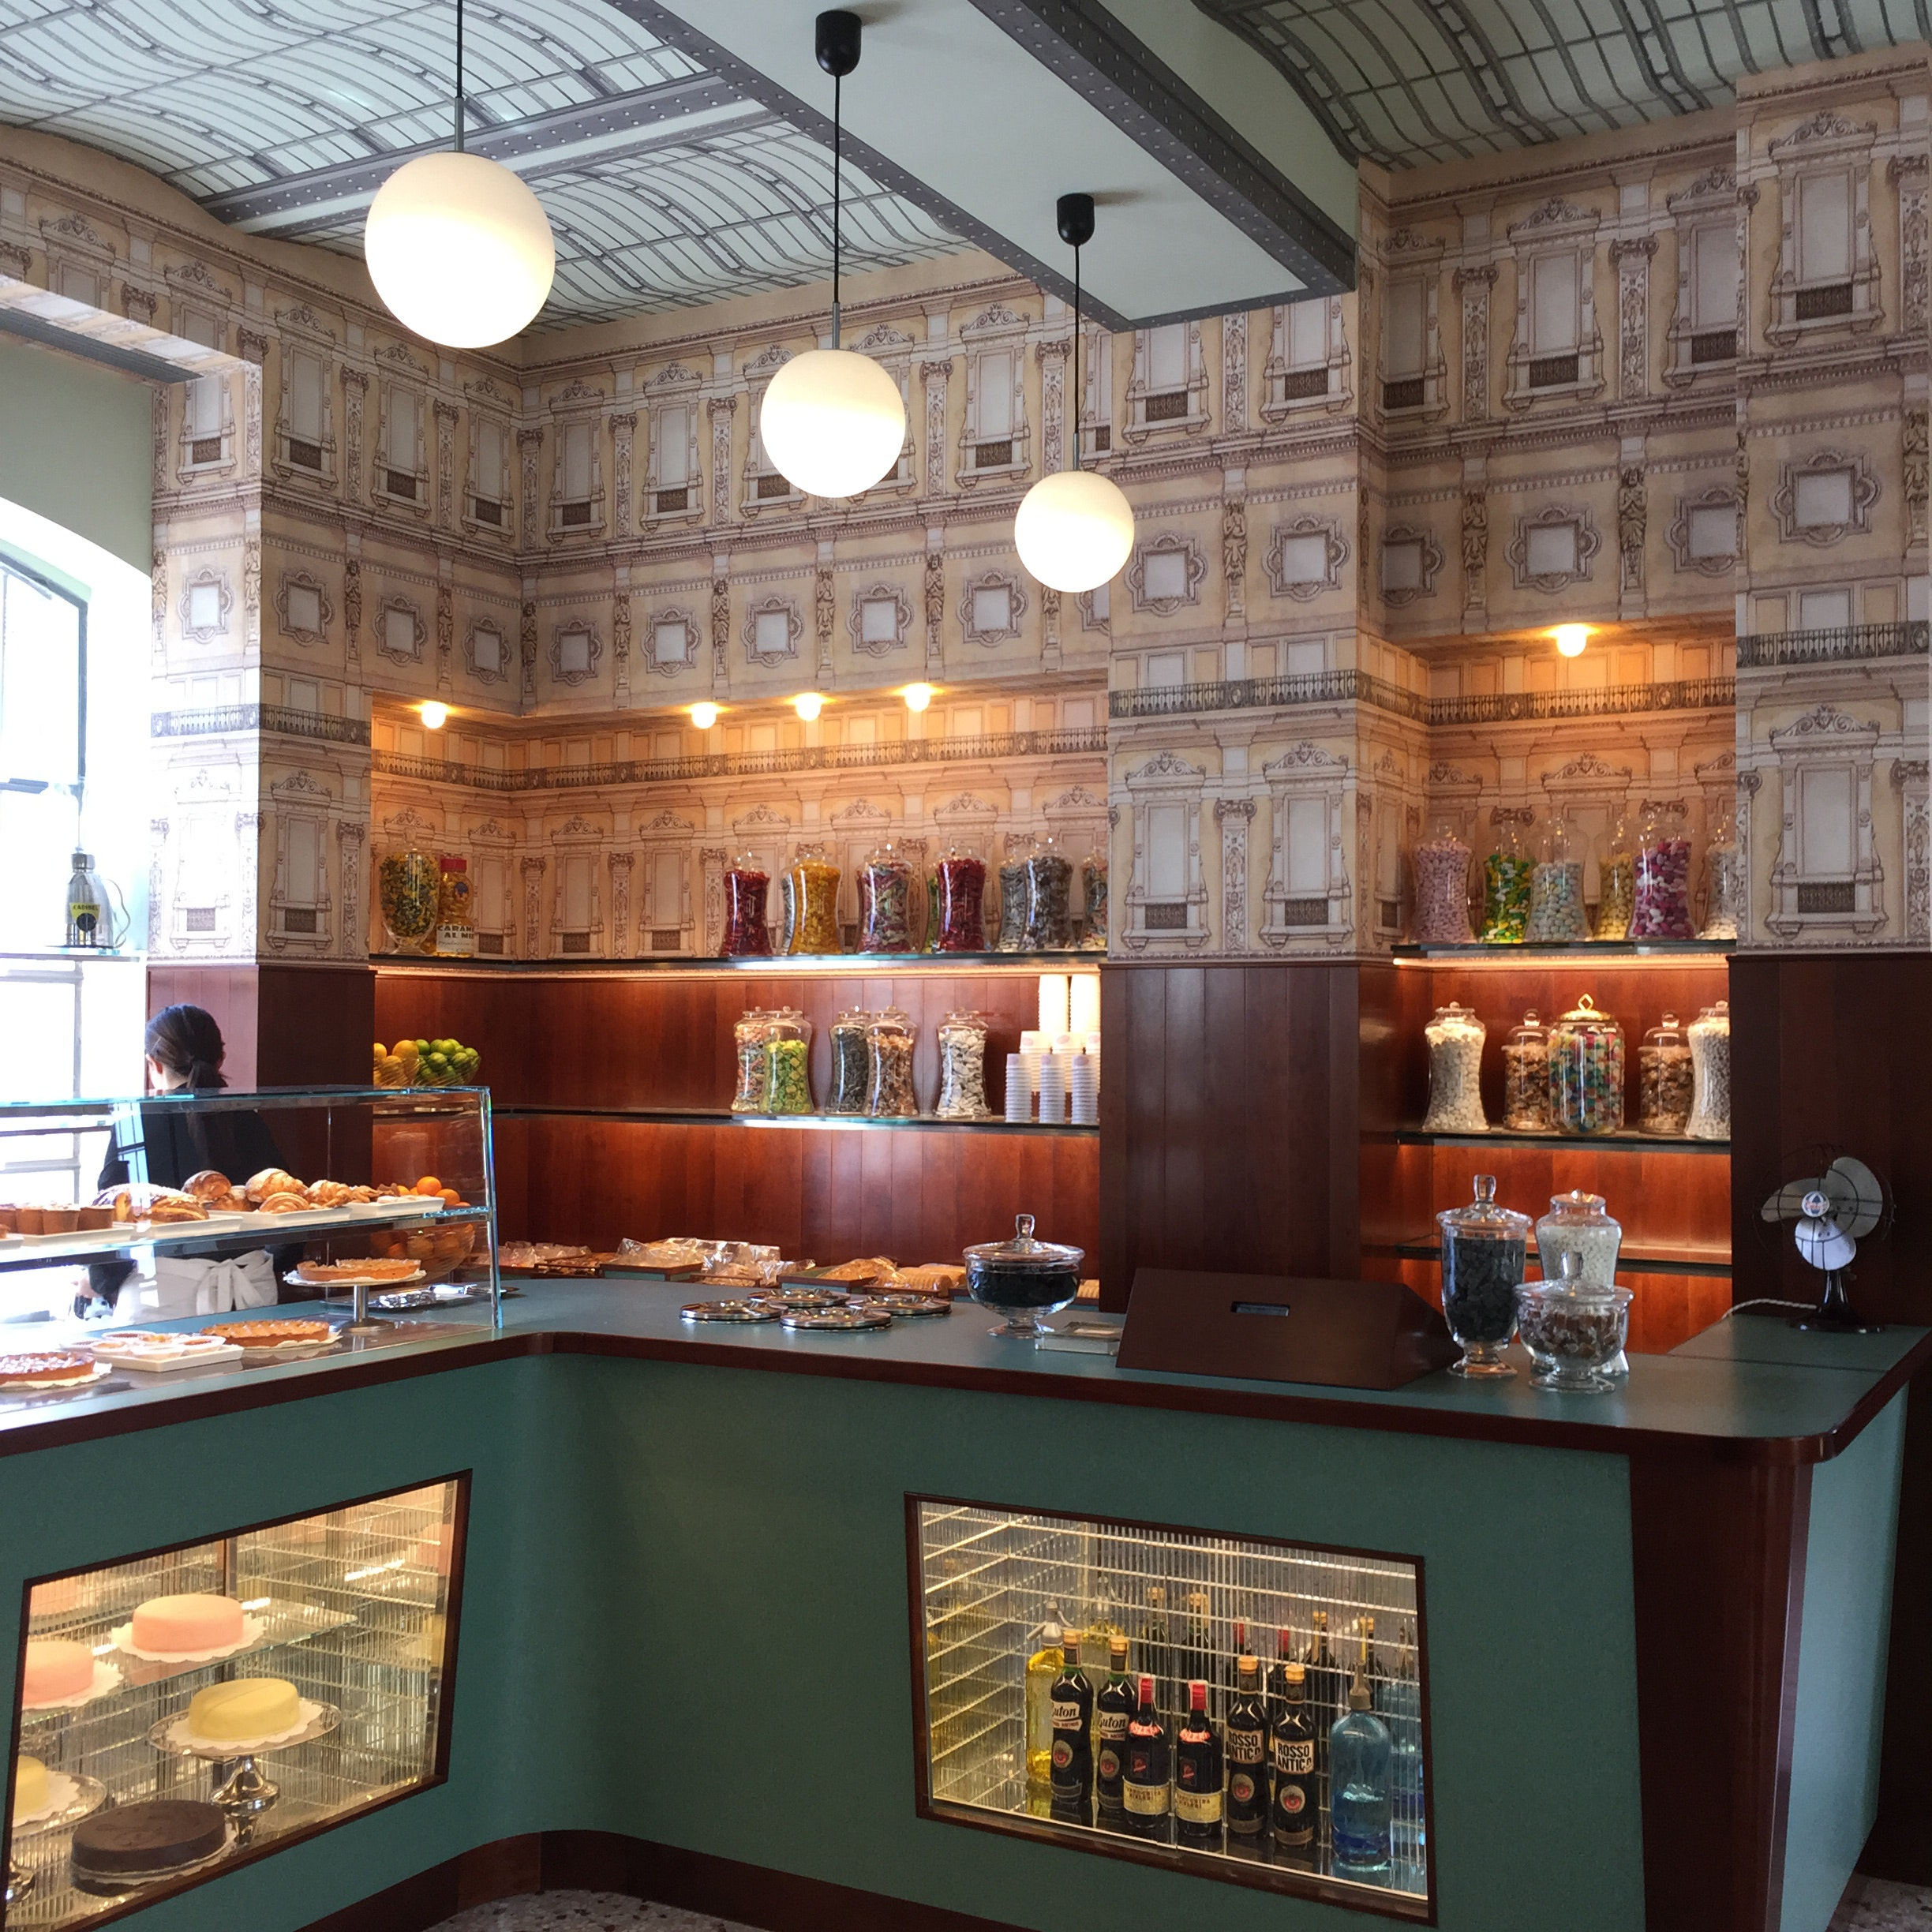 The 1950s-style Milanese café, designed to the last detail by Wes Anderson.